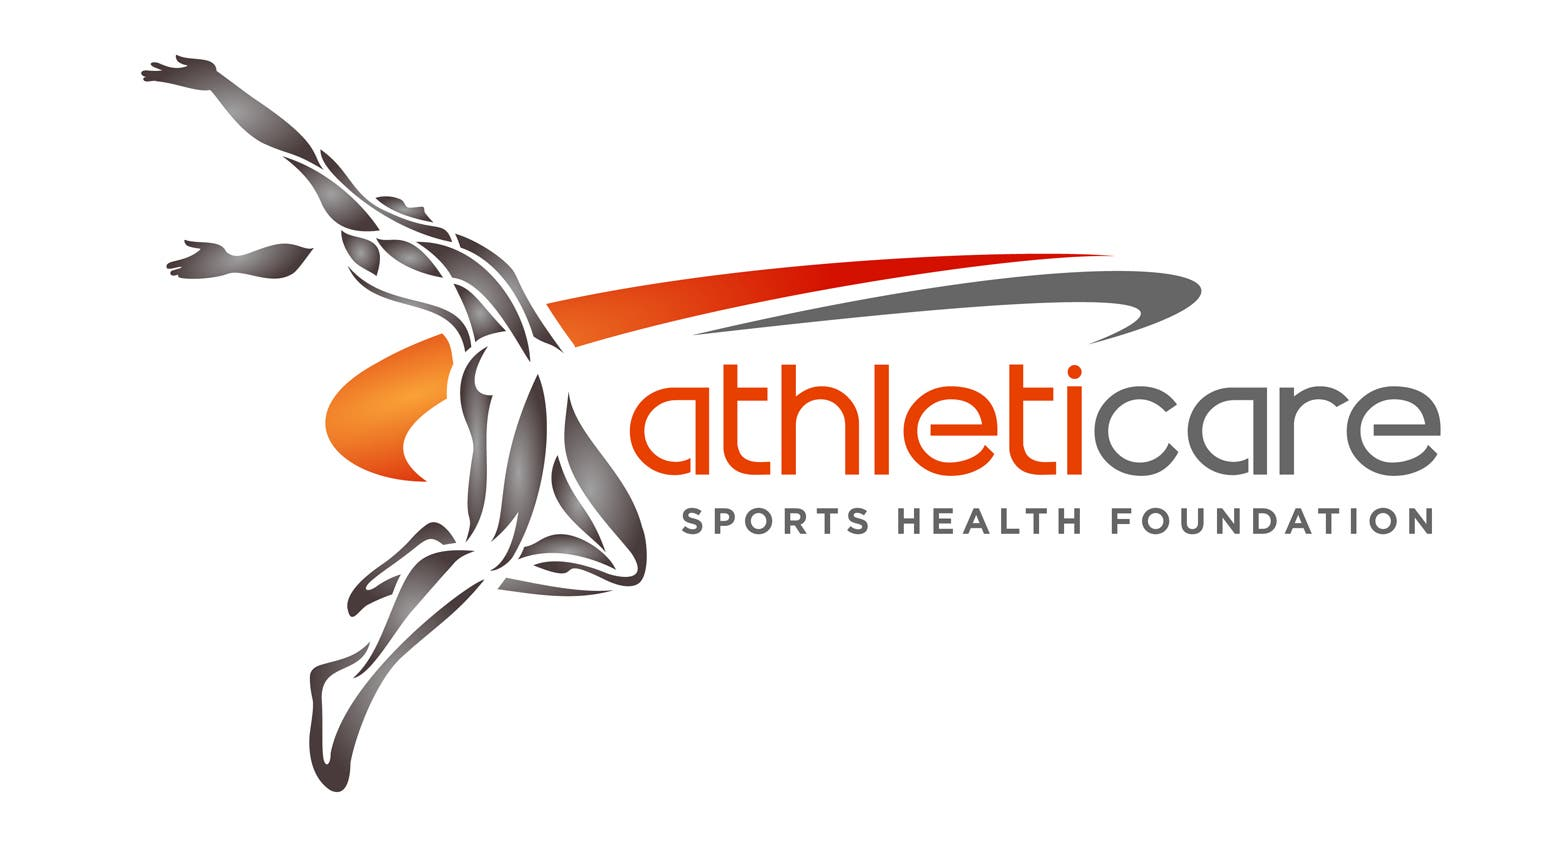 Athleticare: Helping to Reduce Youth Sports Injuries in High